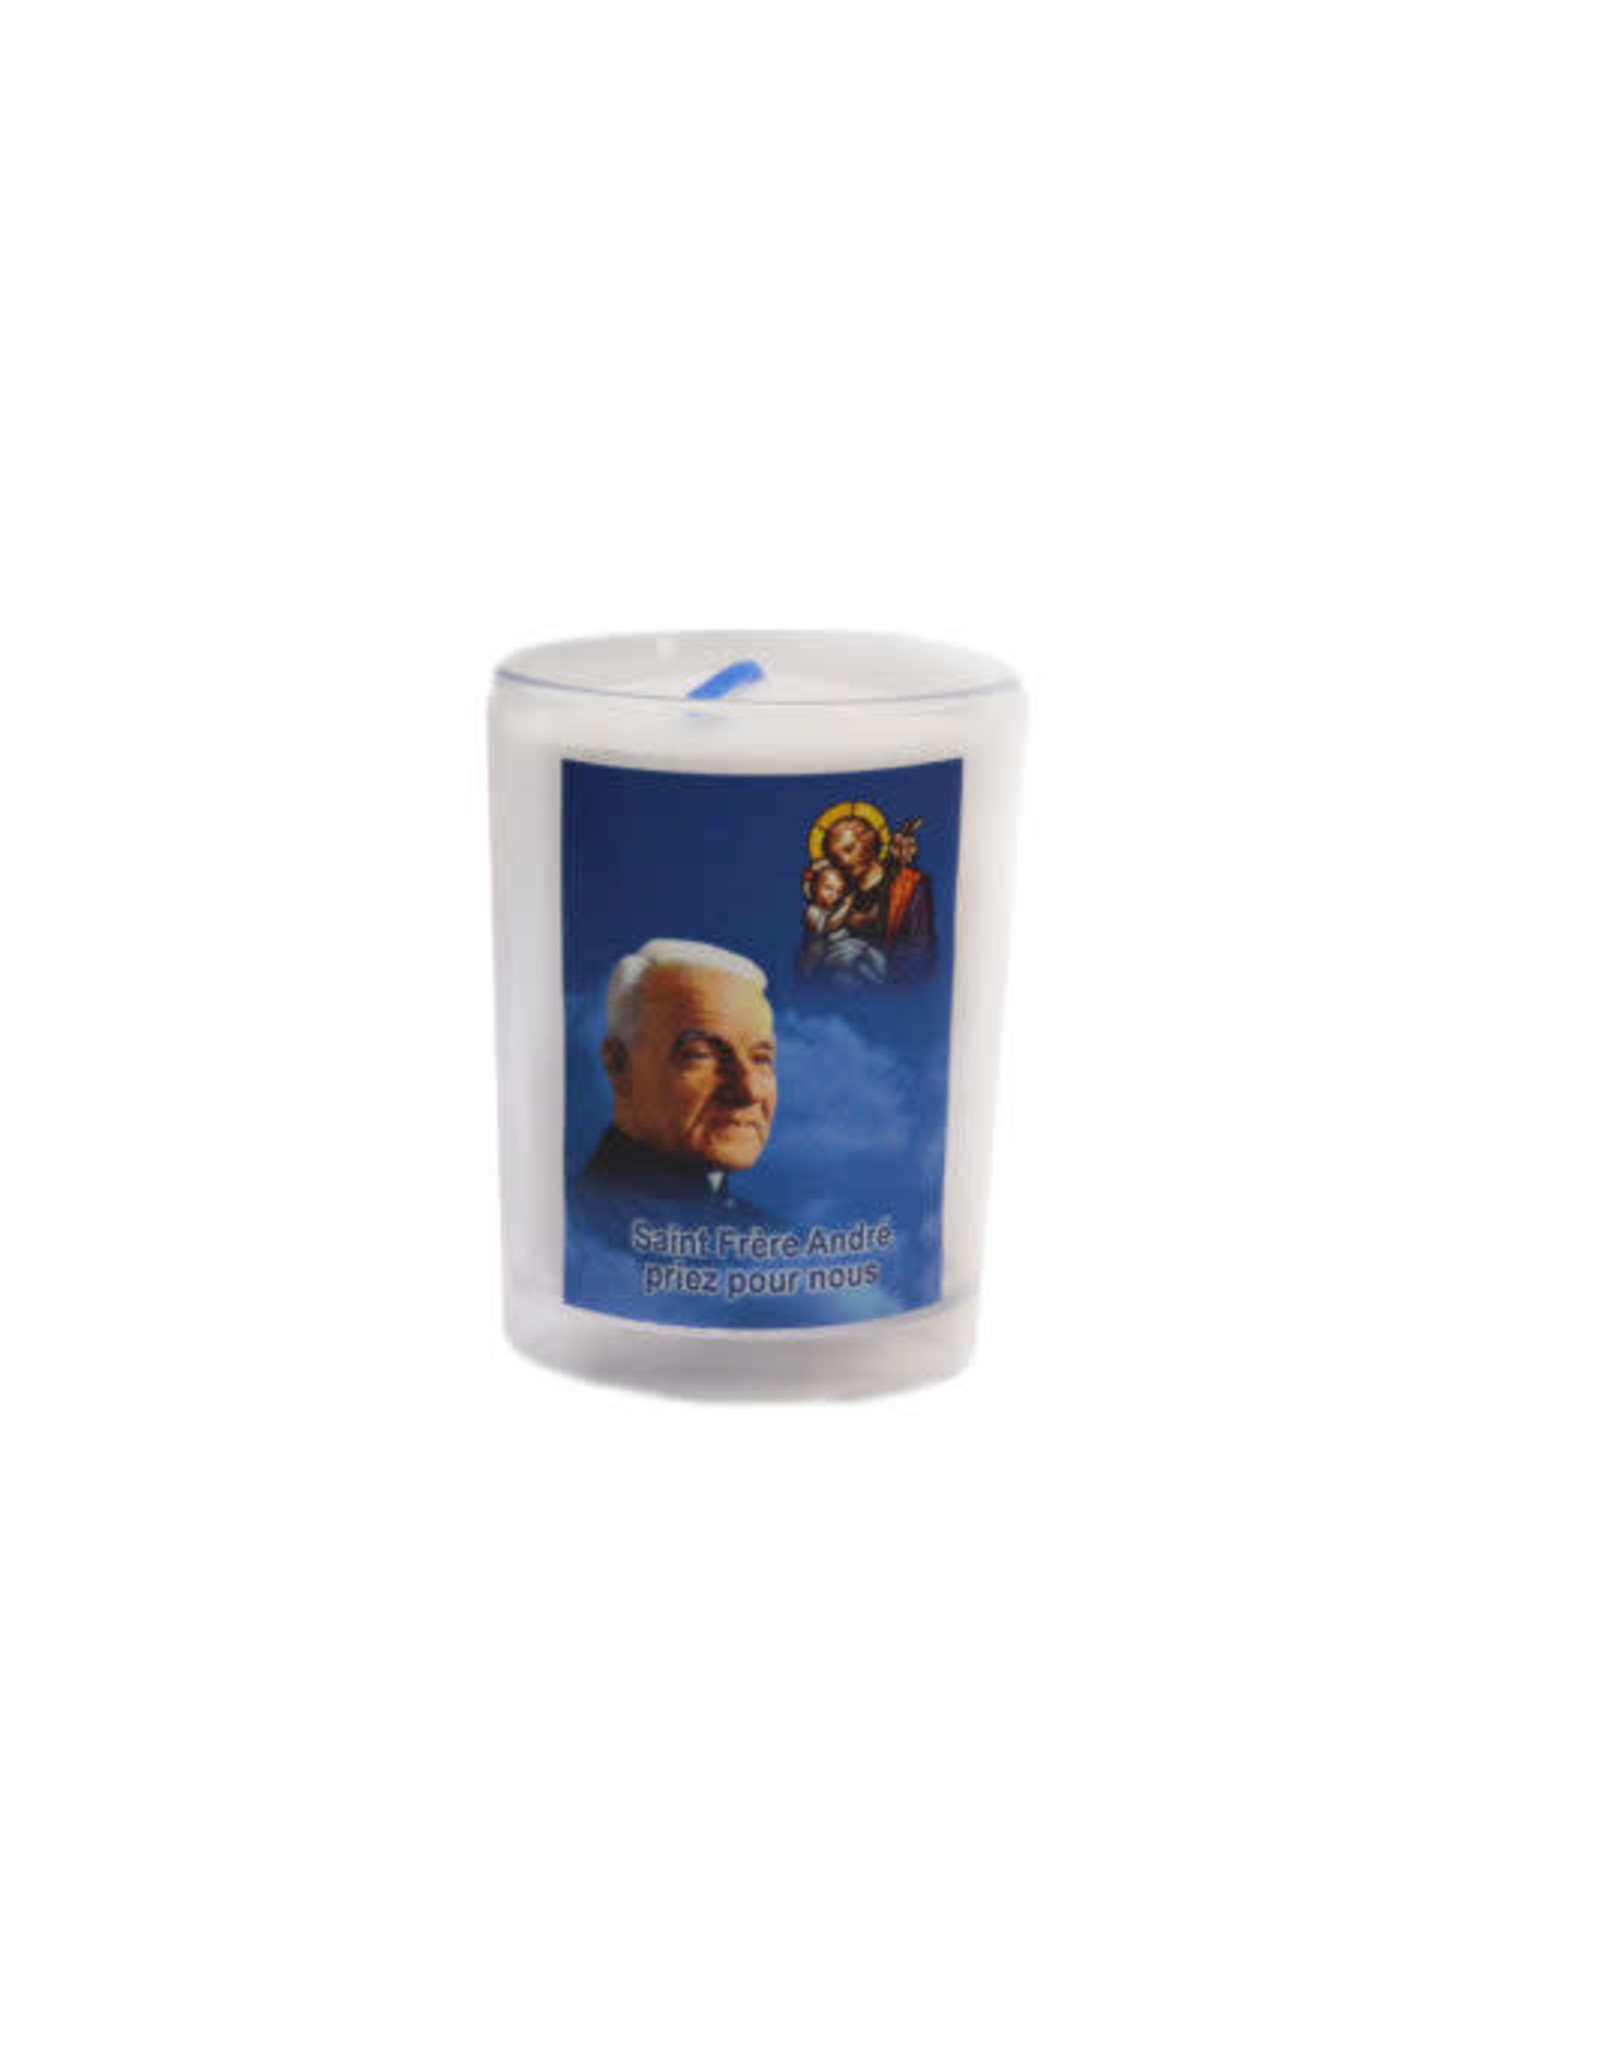 Chandelles Tradition / Tradition Candles Saint brother André votive candle (french)